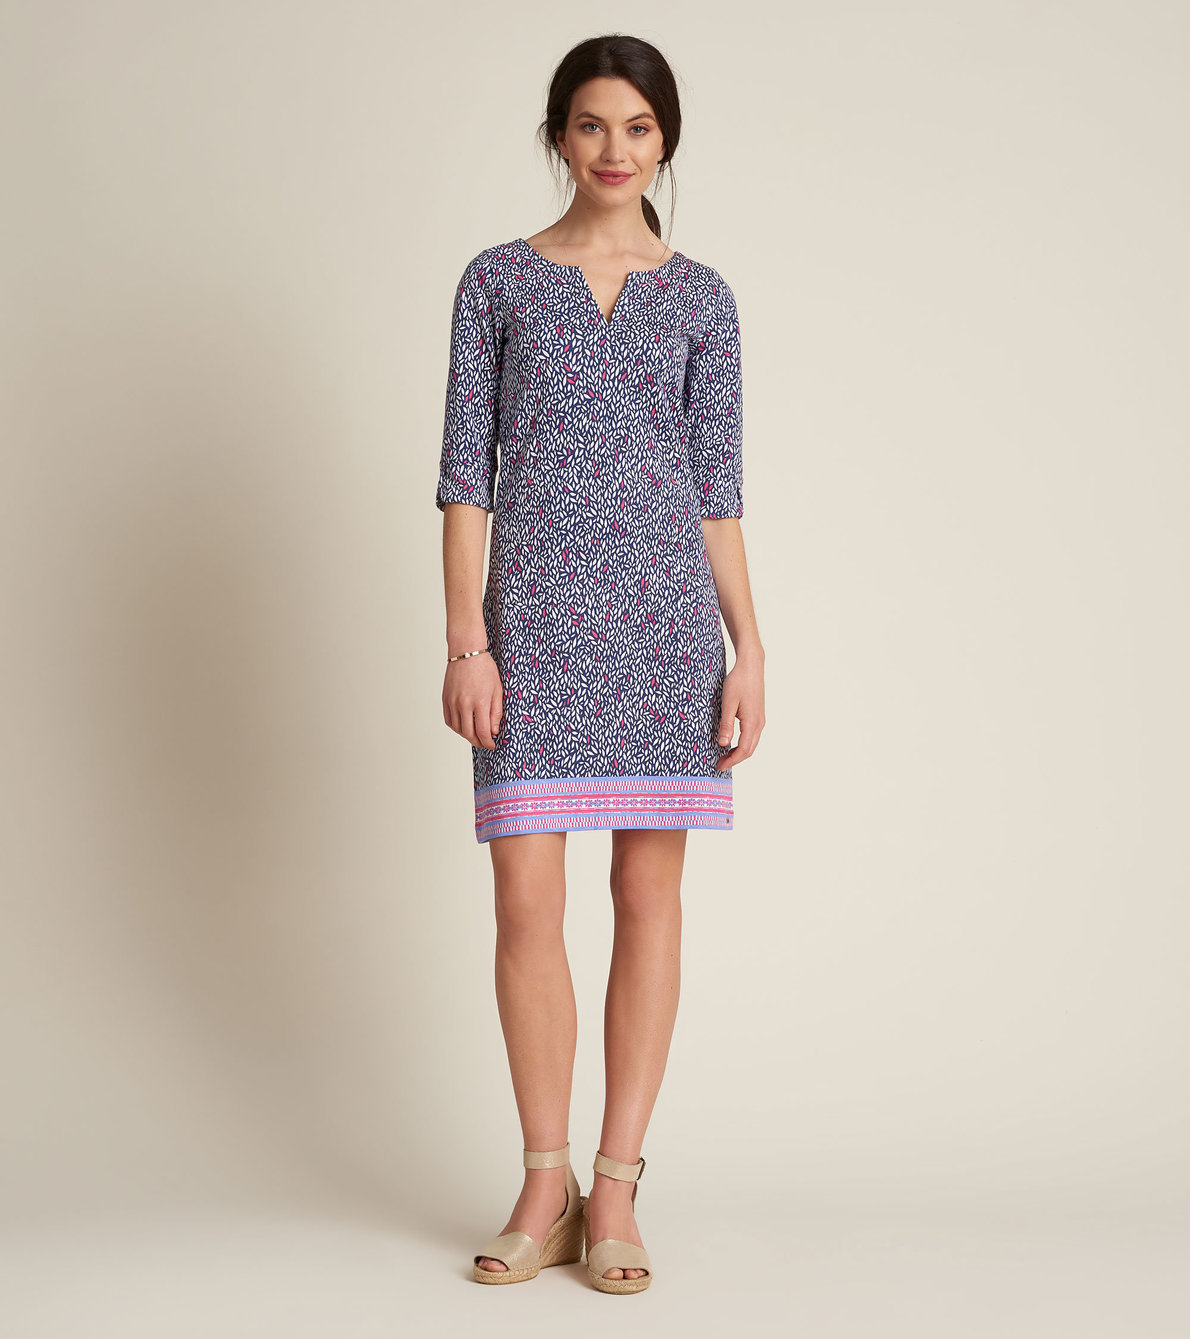 View larger image of Lucy Dress - Diamond Polka Dots